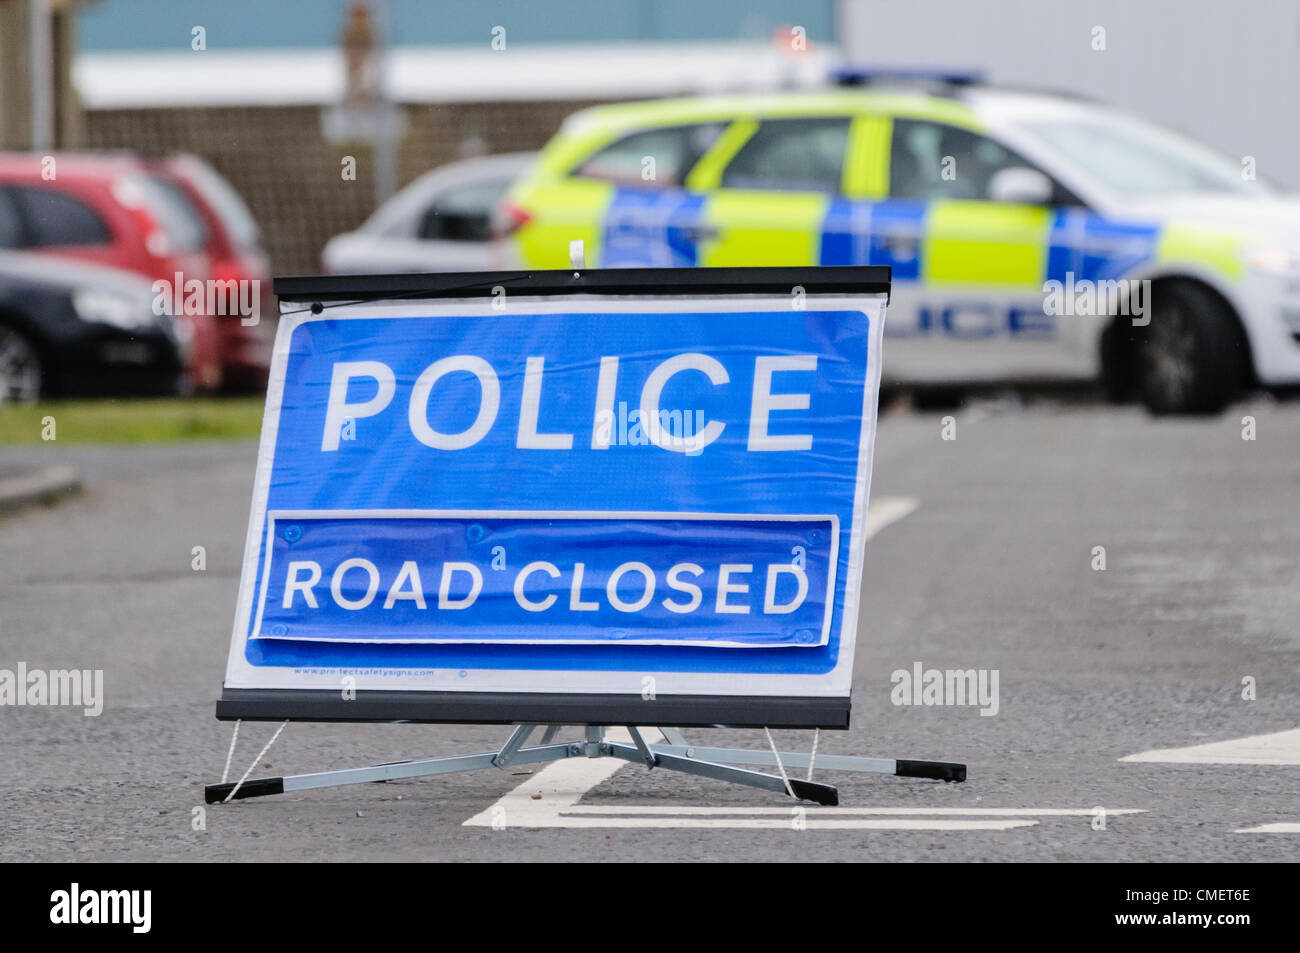 Police road closed sign with police car blocking the road - Stock Image